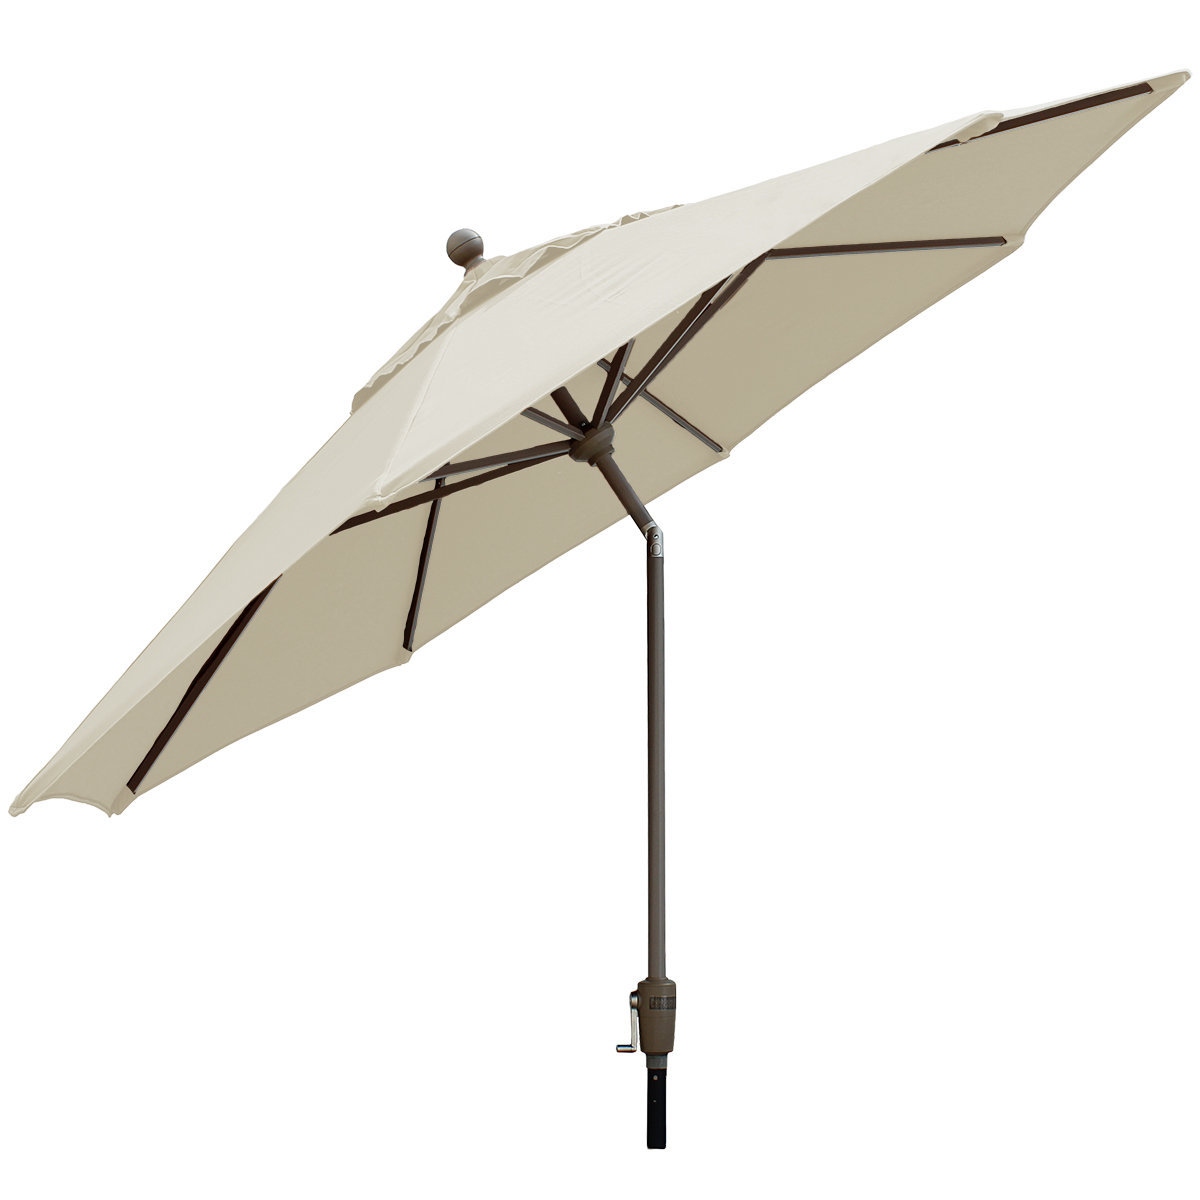 Crowland 9' Market Sunbrella Umbrella Regarding Favorite Sherlyn Rectangular Market Umbrellas (View 18 of 20)